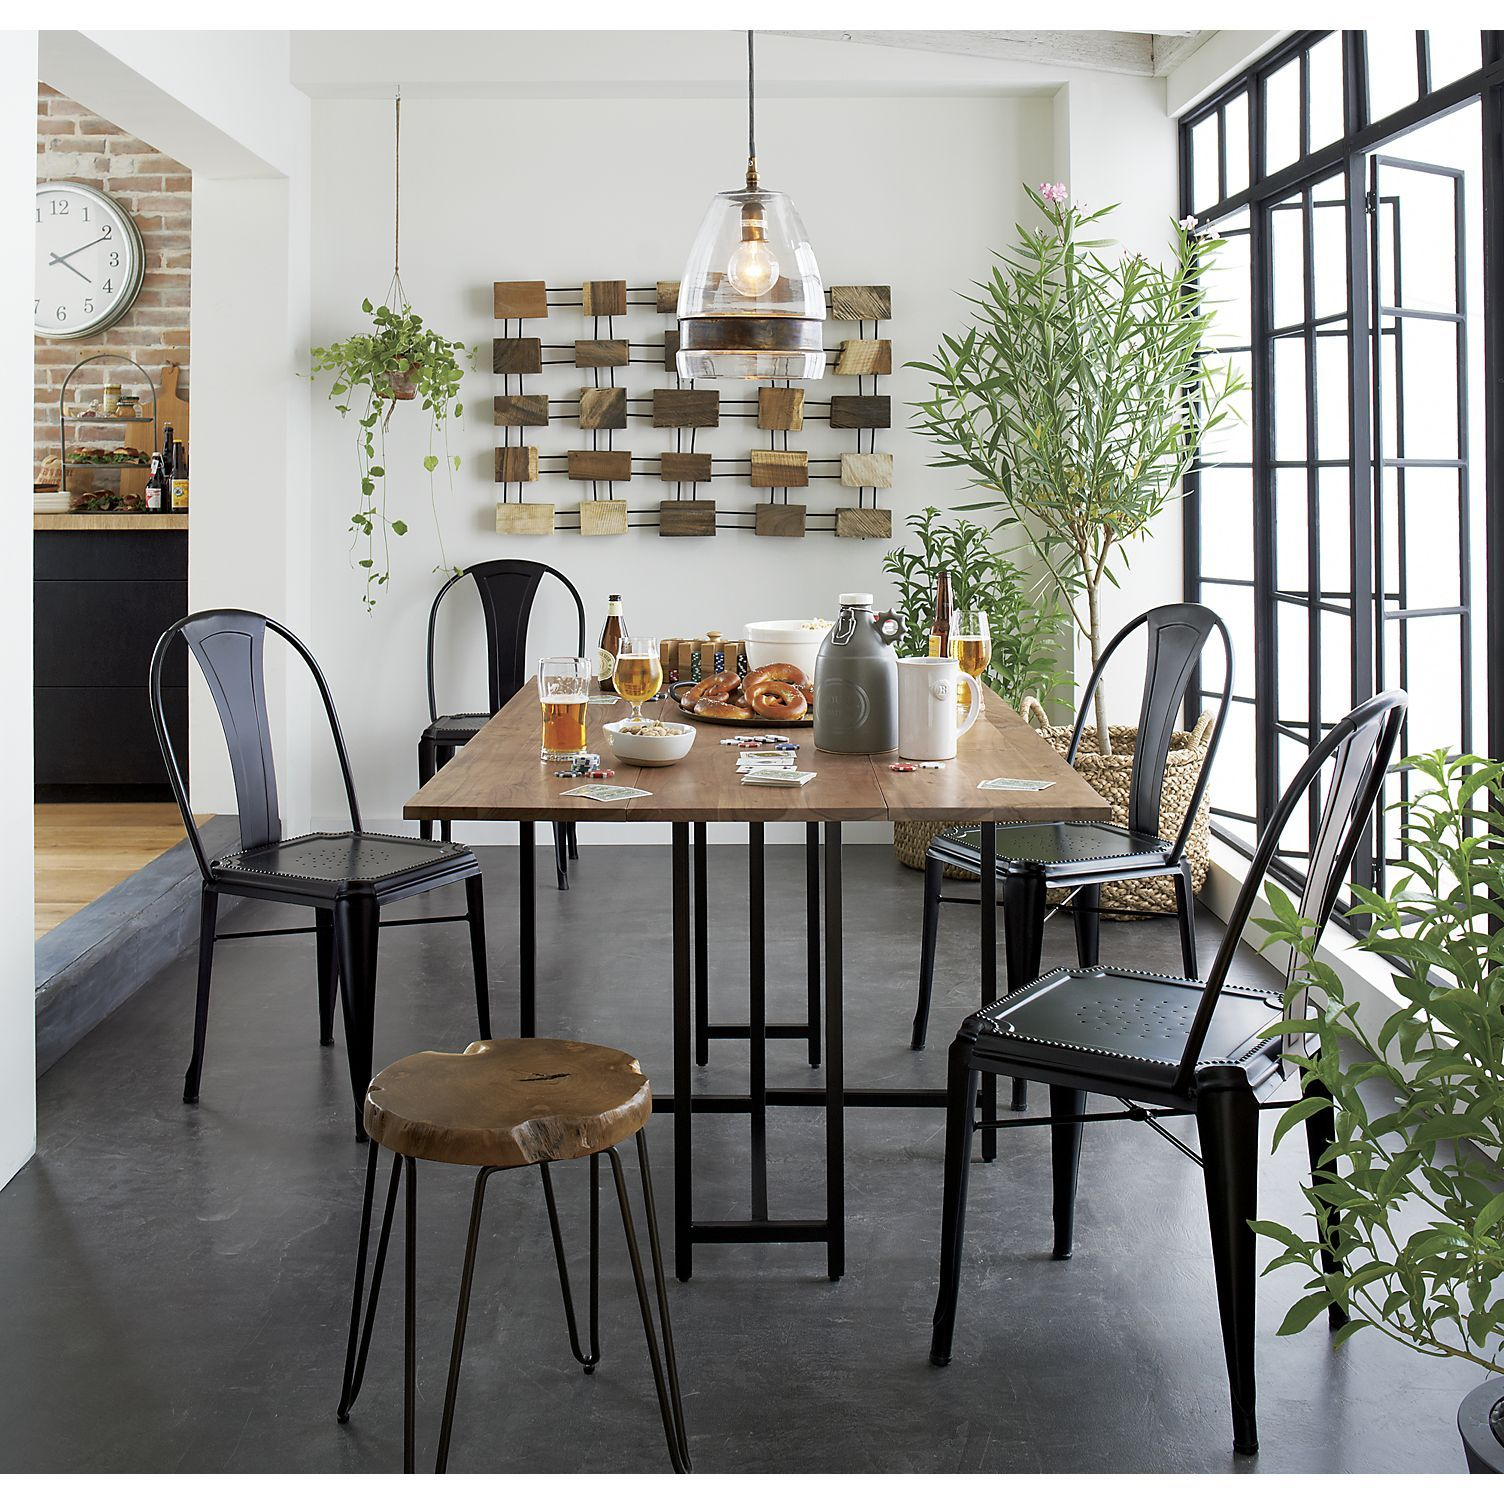 Crate and barrel dining room table - Gather Around A Kitchen Or Dining Table From Crate And Barrel Browse A Variety Of